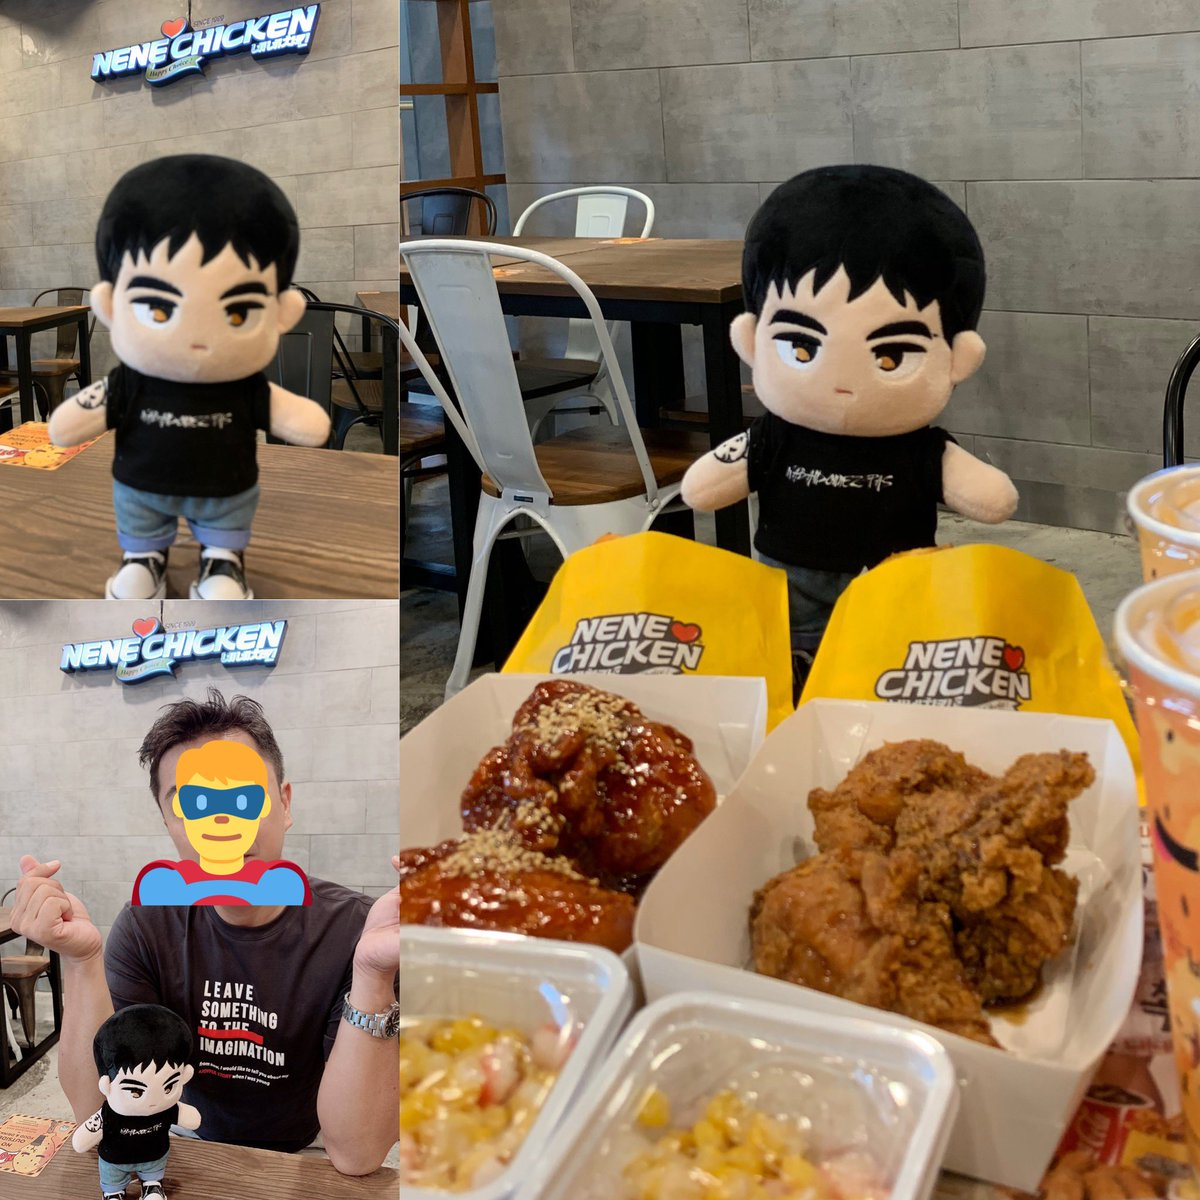 TGIF Lunch date @nenechicken_sg requested by a half-converted ㄴㅇㅅㅌ aka my realnamja with realbaekho in tow! #BAEKHO #강동호 #백호 #NUEST_W #뉴이스트W #NUEST #뉴이스트 Not trying to be bias but NeNe is my current fave fried chicken 😆 https://t.co/X3gzj5SRii